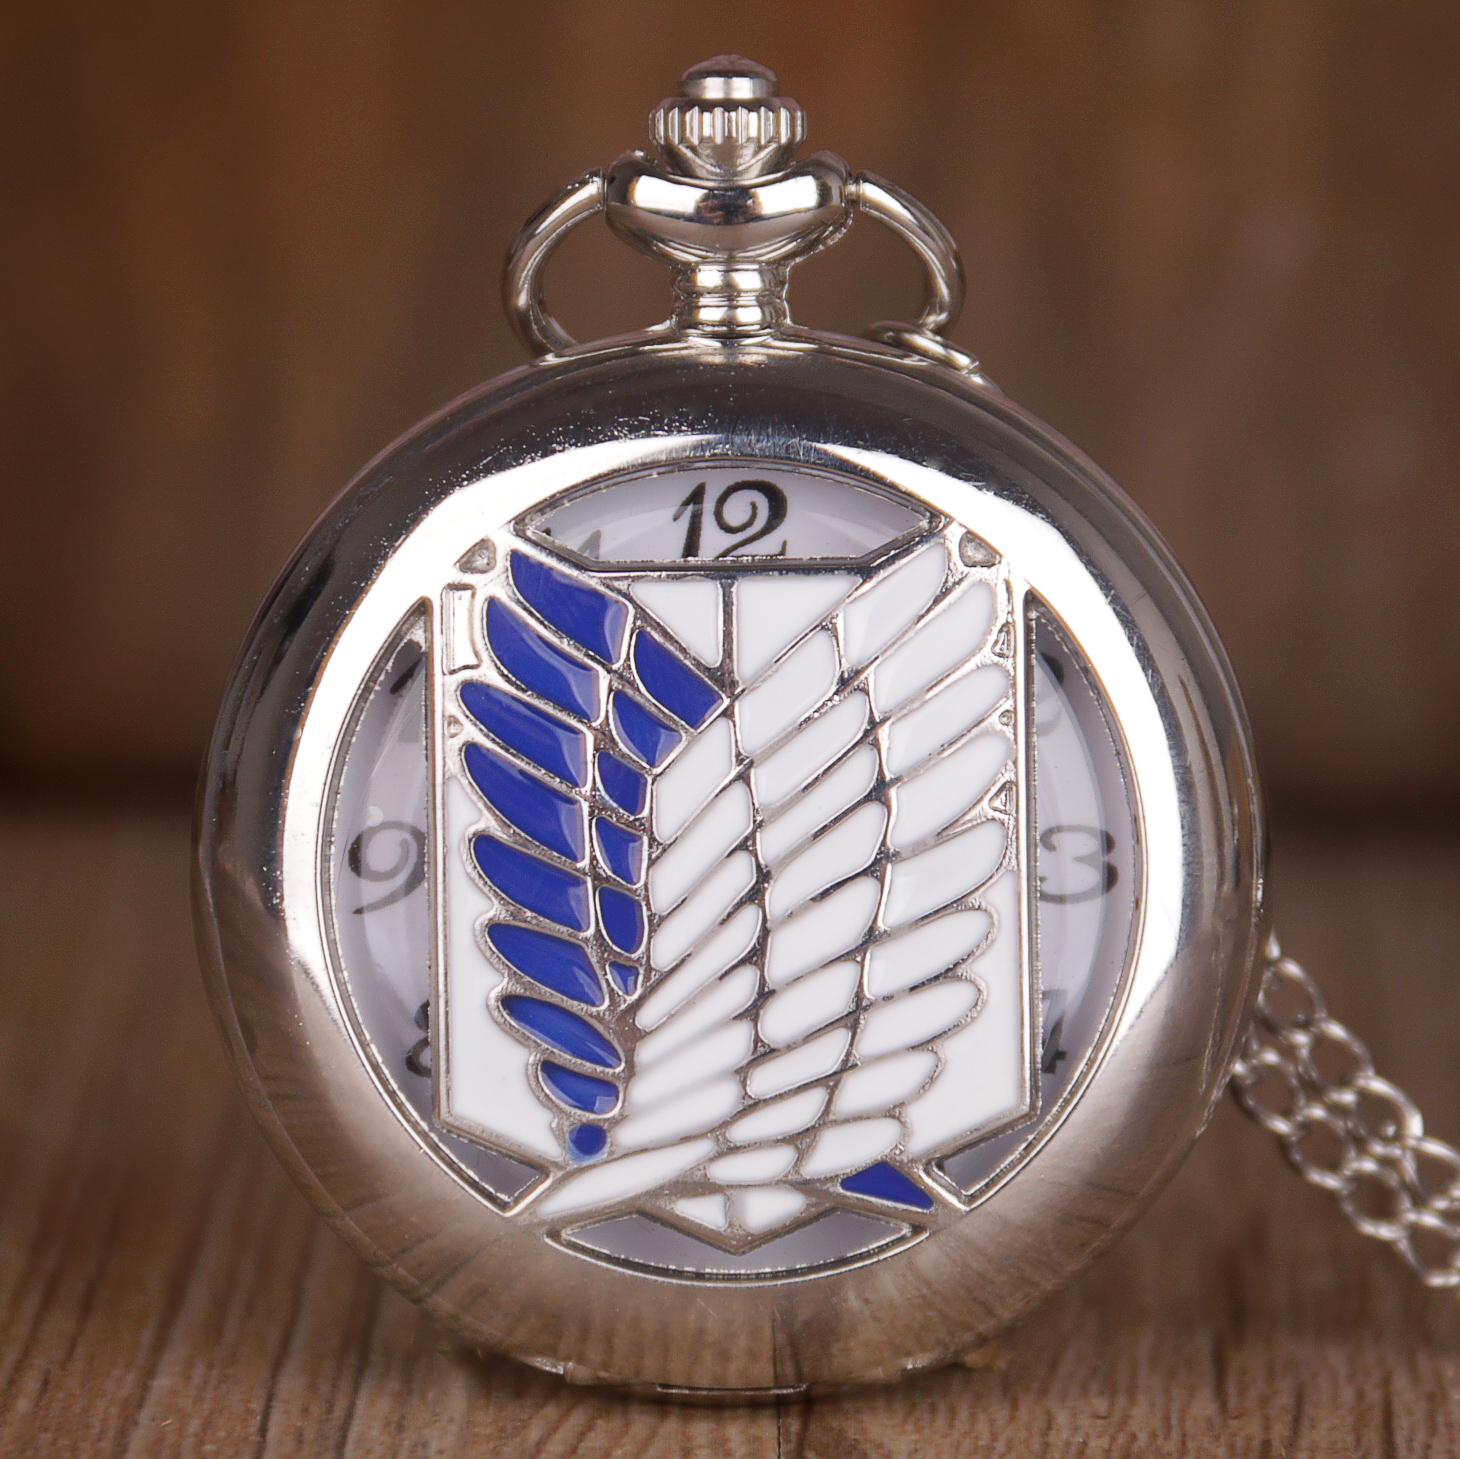 Unisex Unique Design Bronze Attack on Titan Wings of Liberty Clamshell Quartz Pocket Watch Watch Gift CF1025